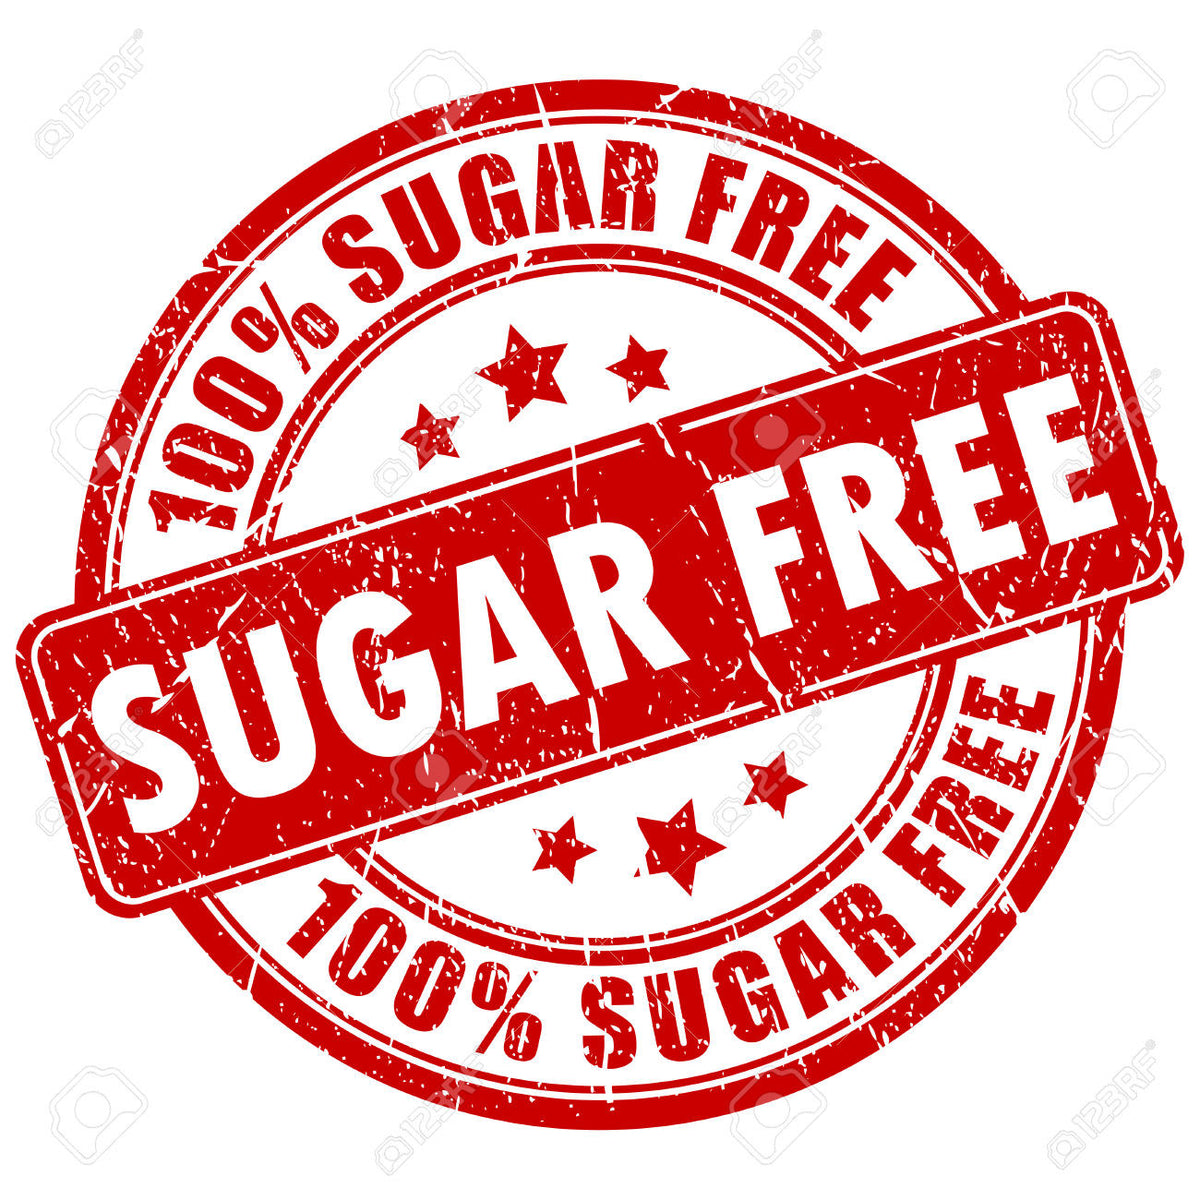 Sugar Free Treats